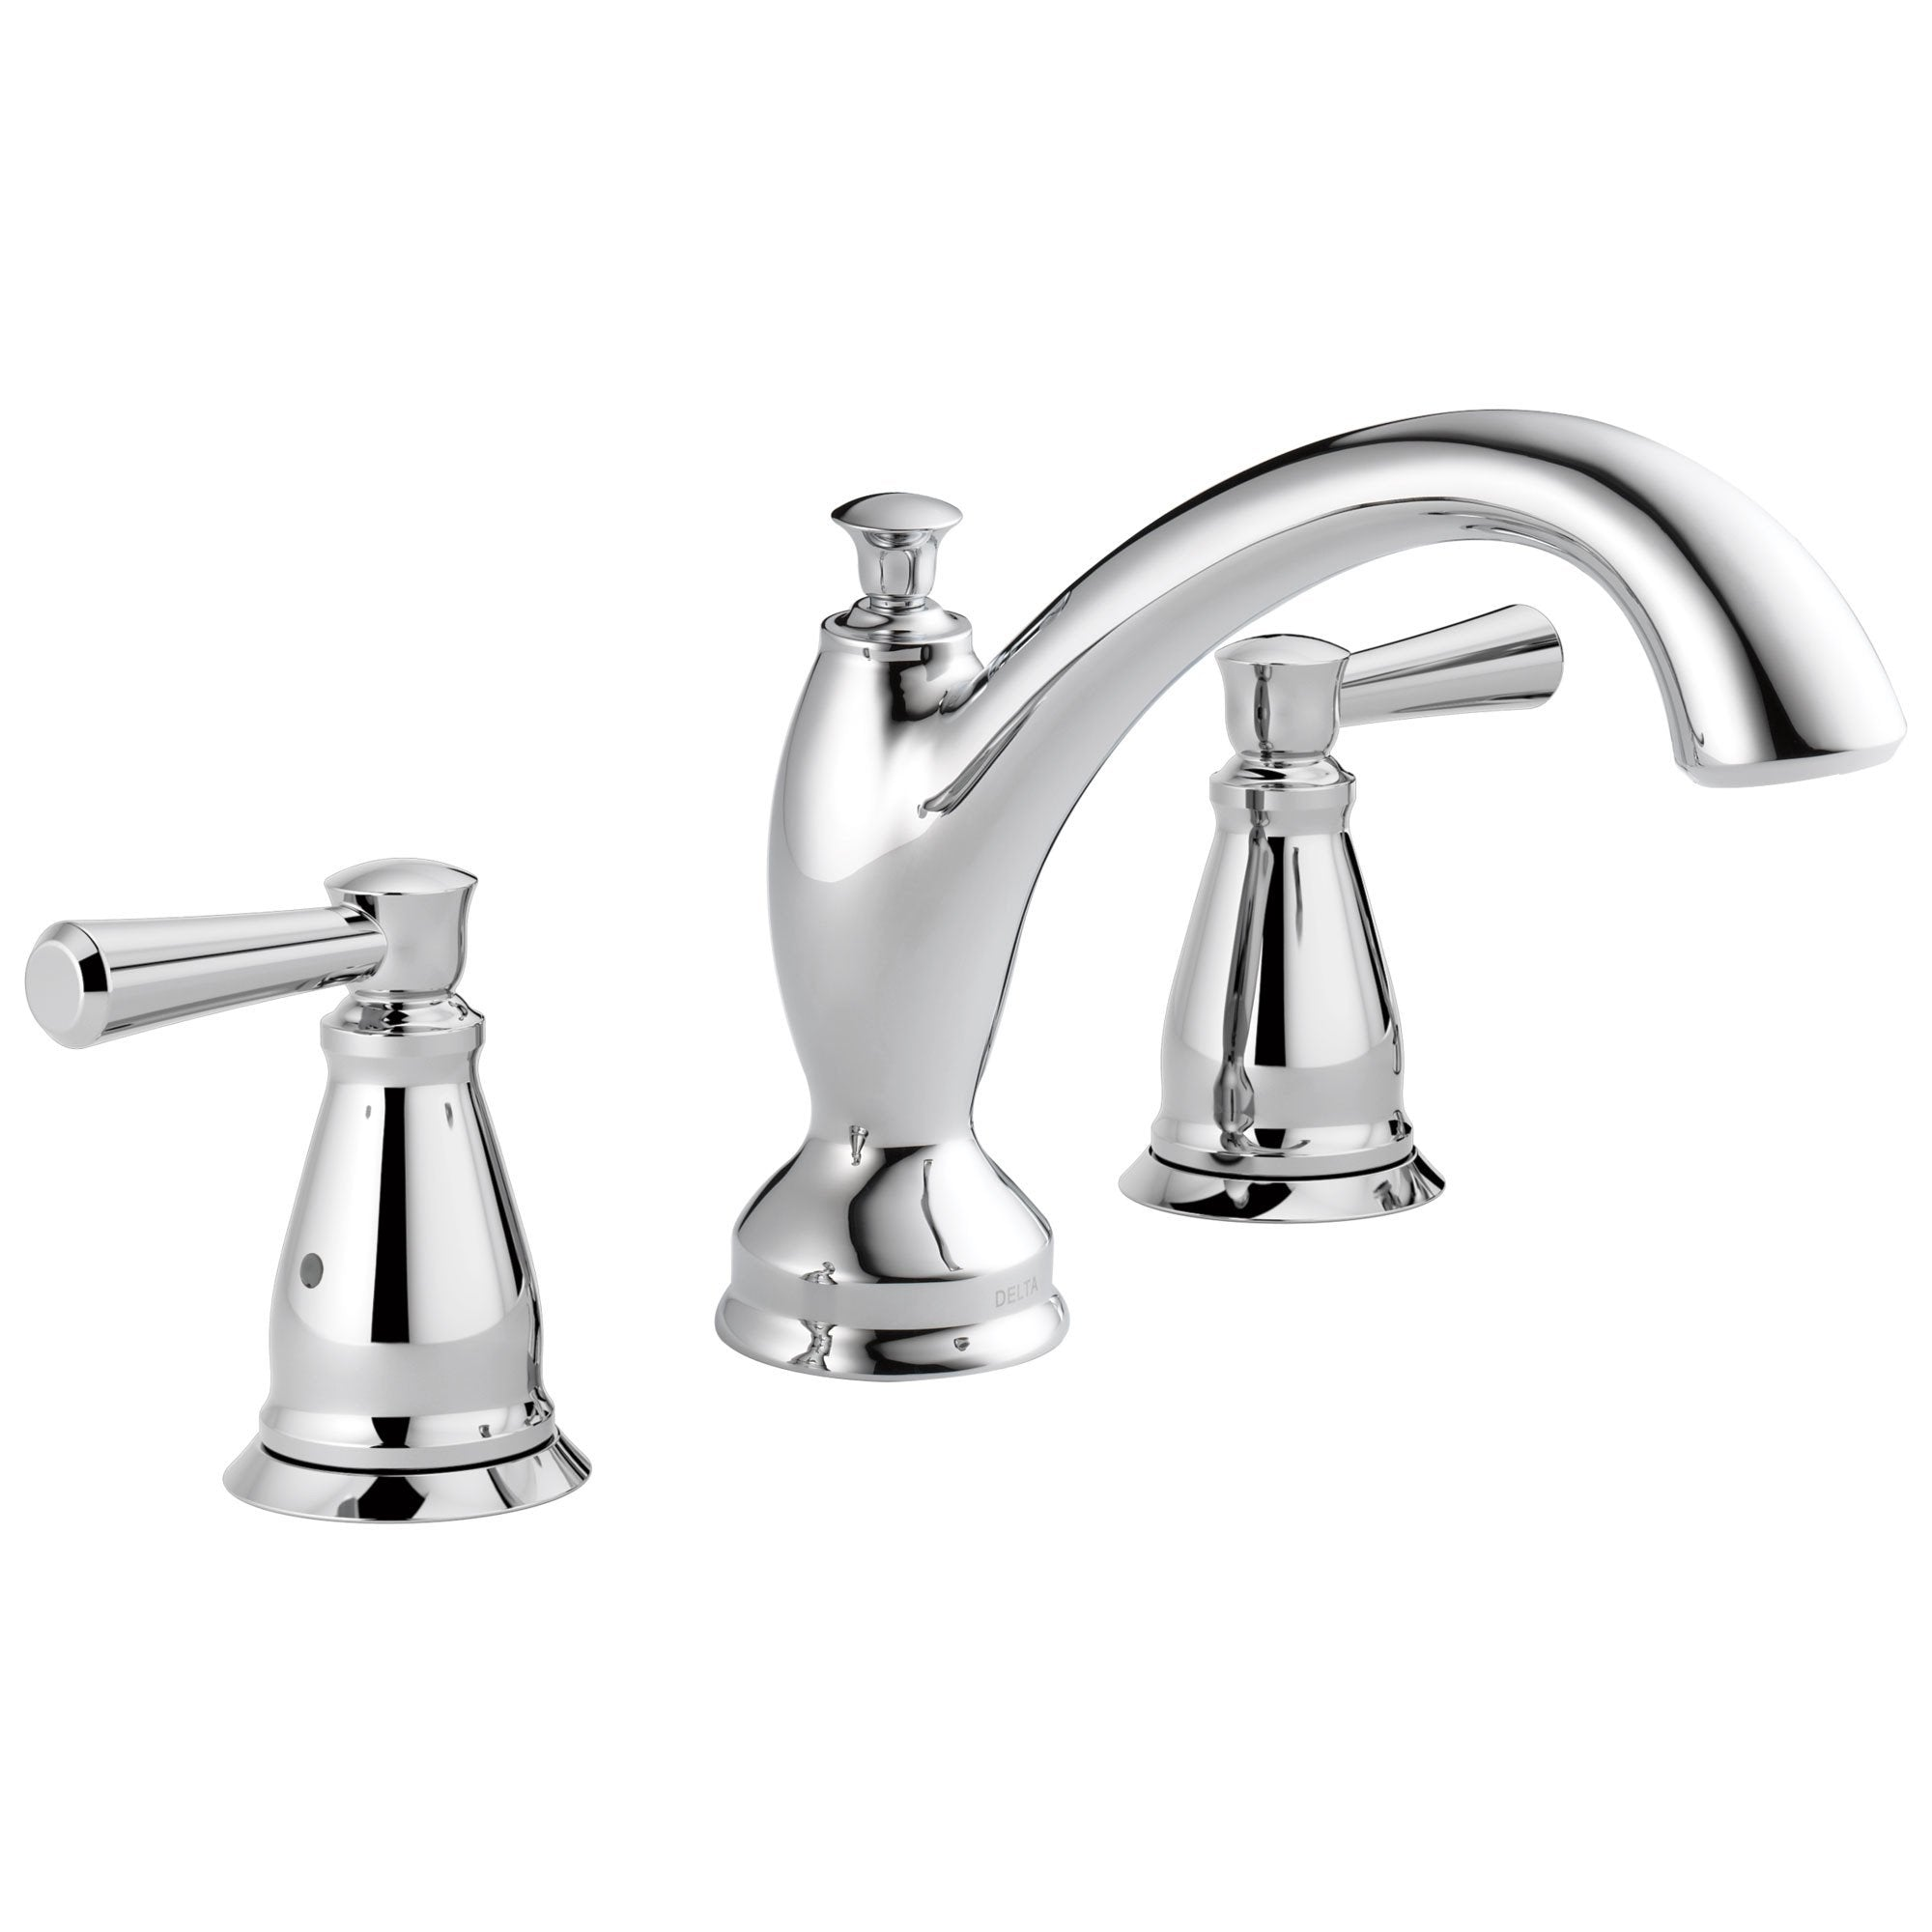 Delta Linden Collection Chrome Finish Widespread Roman Tub Filler Faucet Trim Kit (Rough-in Valve Sold Separately) DT2793